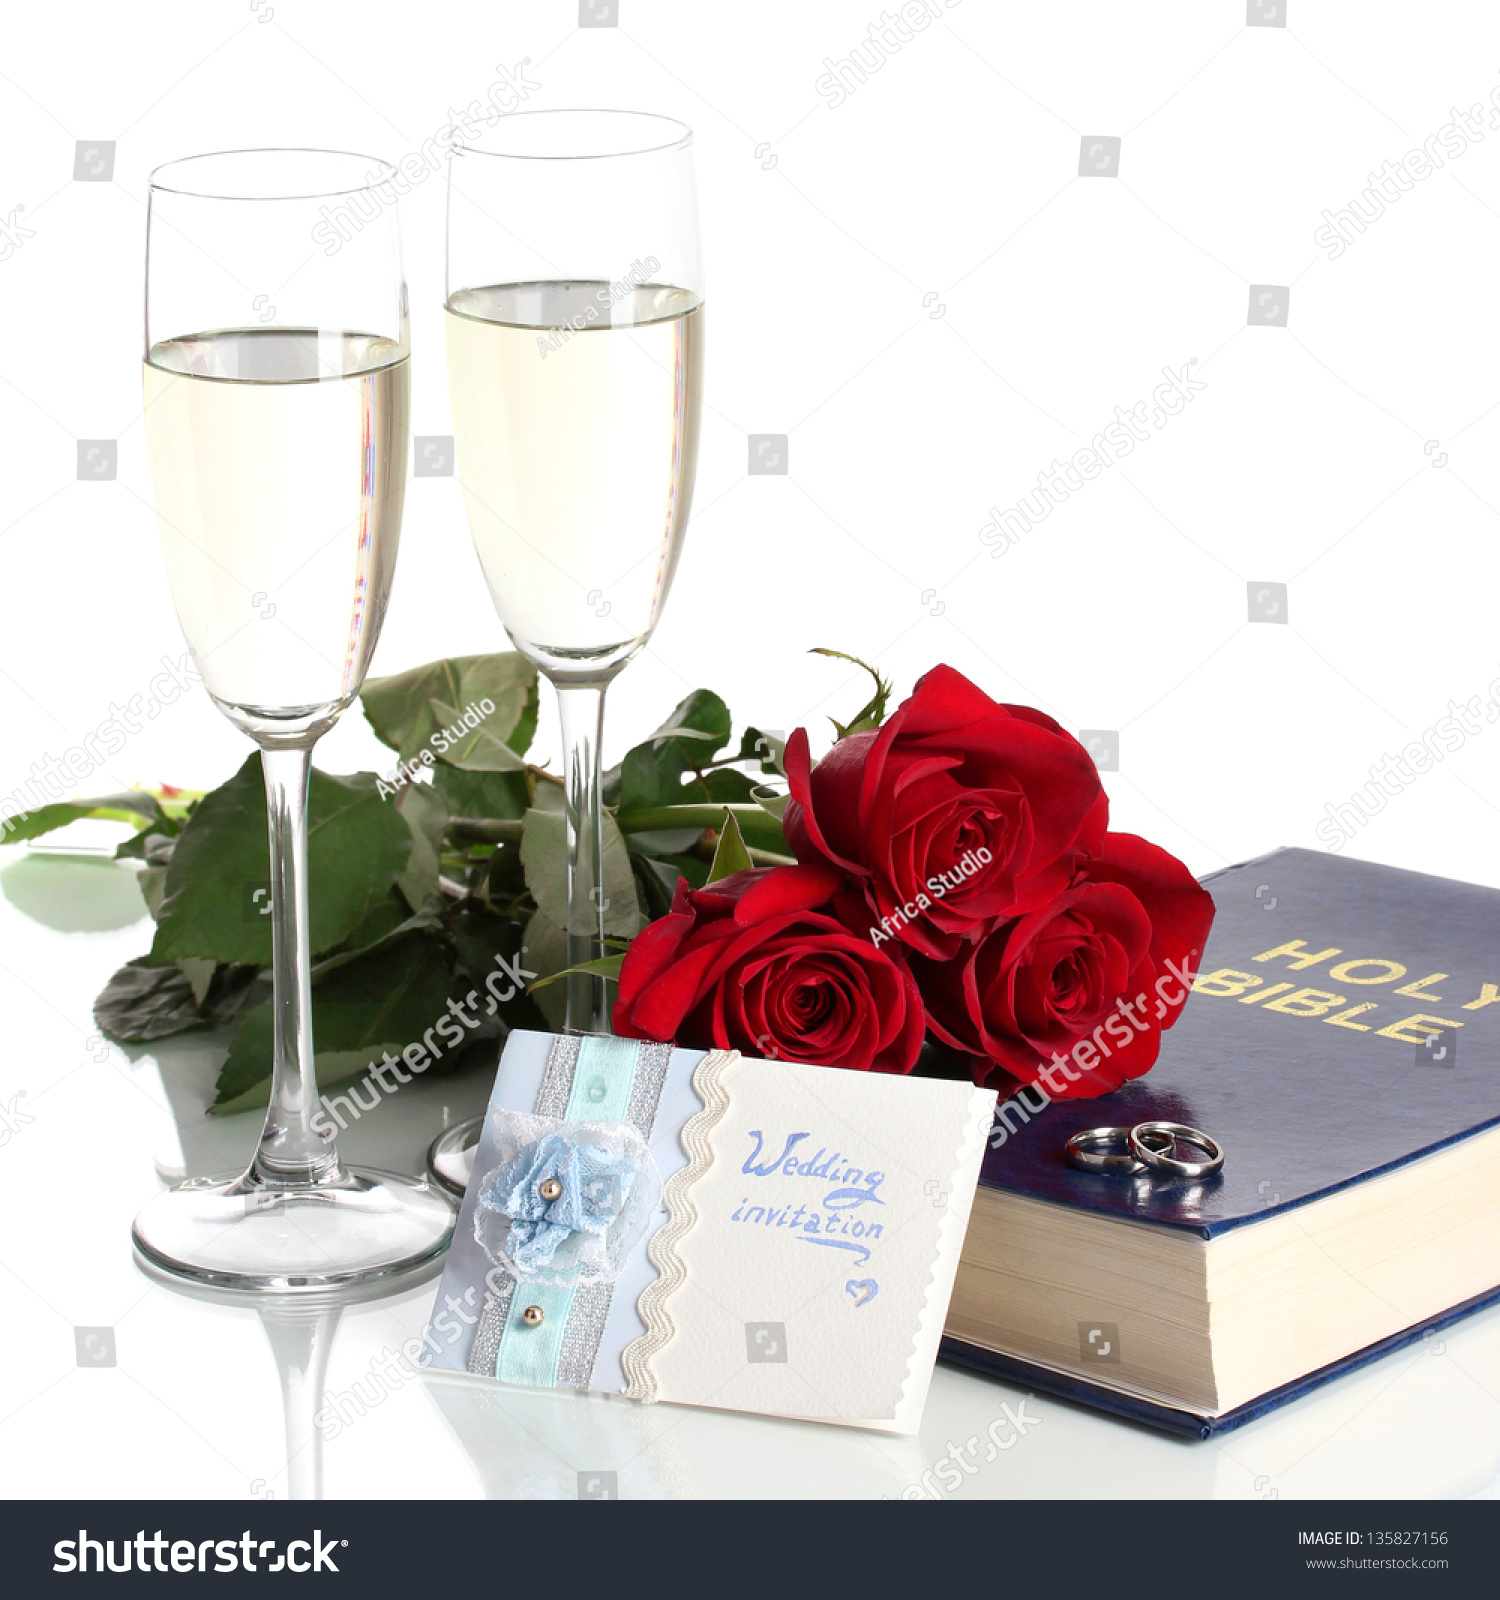 Wedding Rings On Bible Roses Glasses Stock Photo (Edit Now ...